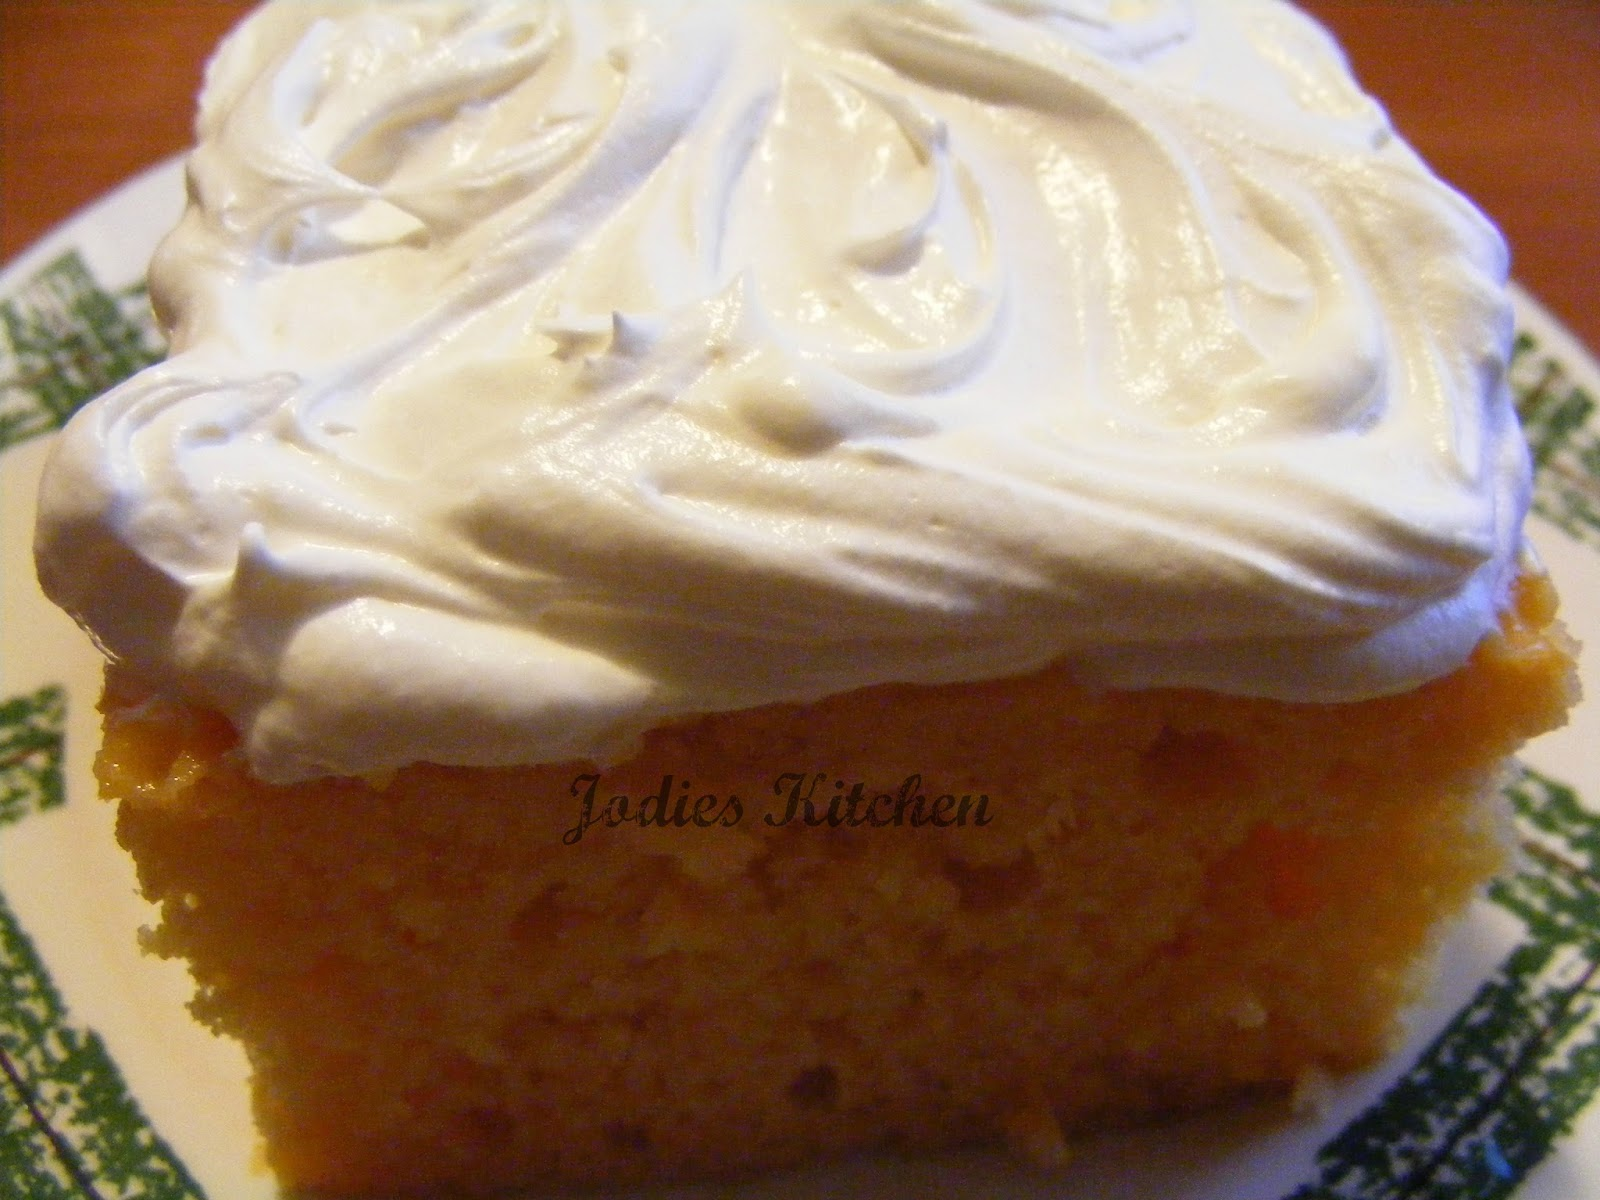 Jodies Kitchen: Mandarin Orange Cake